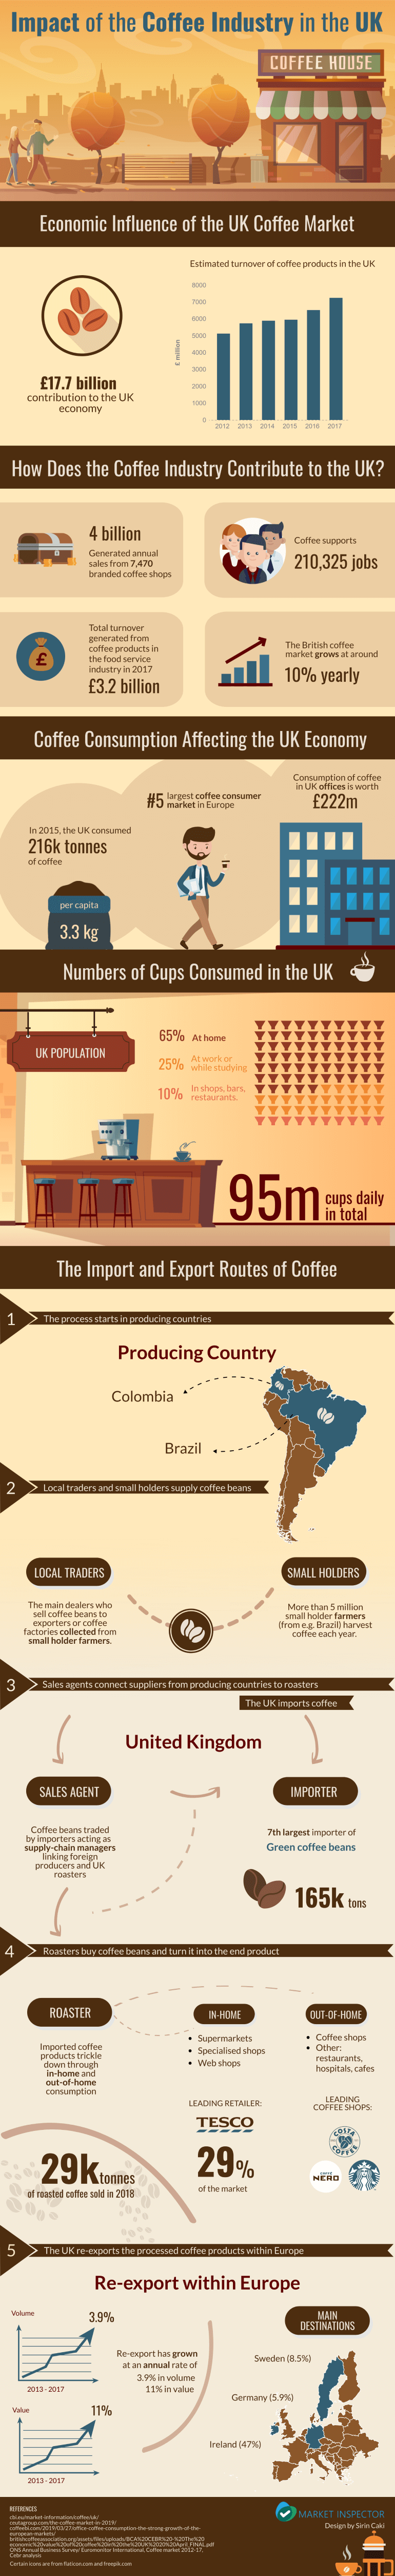 The Impact of the Coffee Industry in the UK